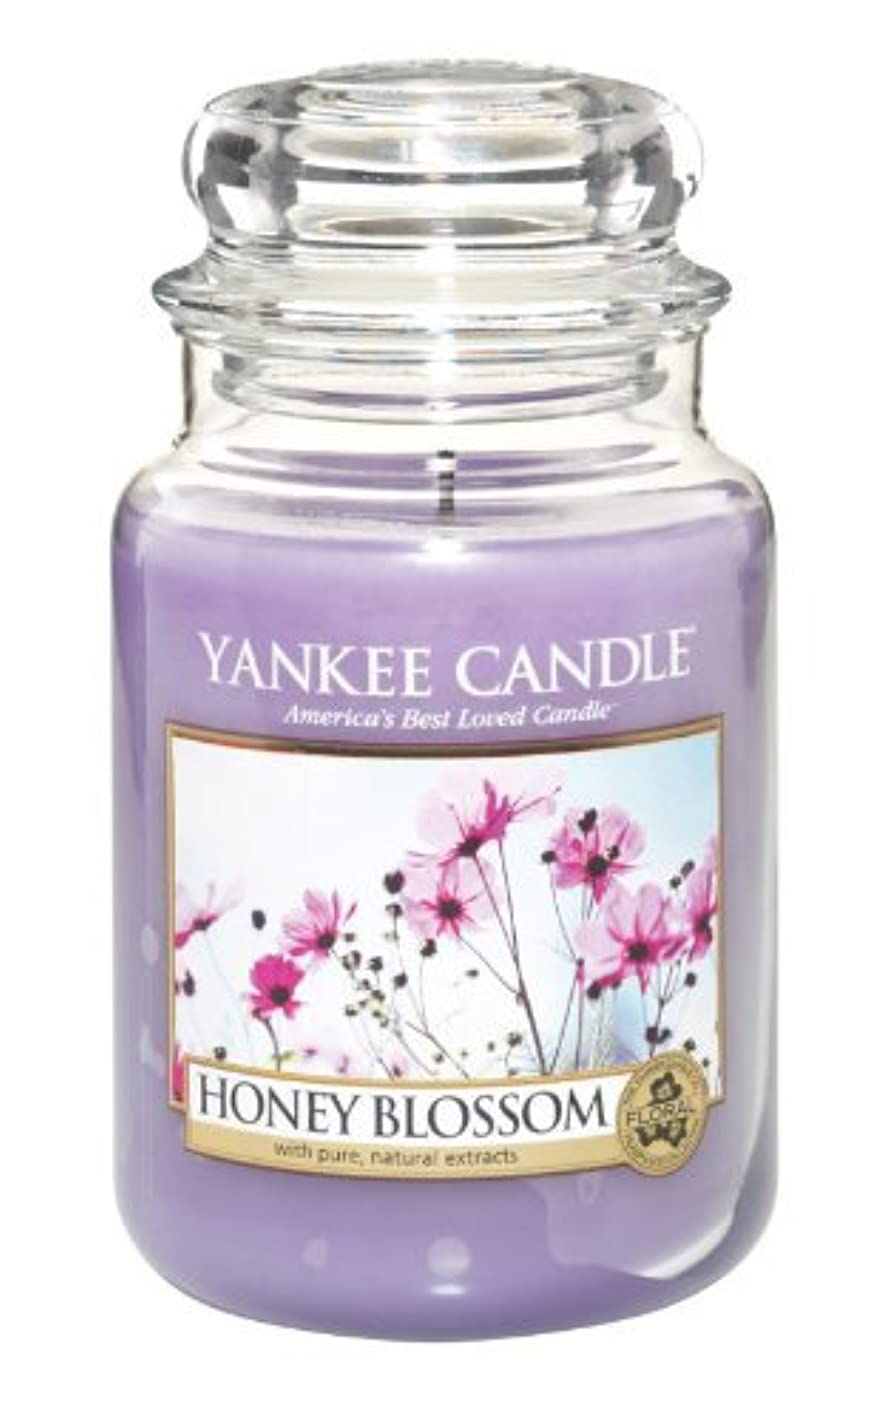 Yankee Candle Honey Blossom 22-Ounce Jar Candle, Large by Yankee Candle [並行輸入品]